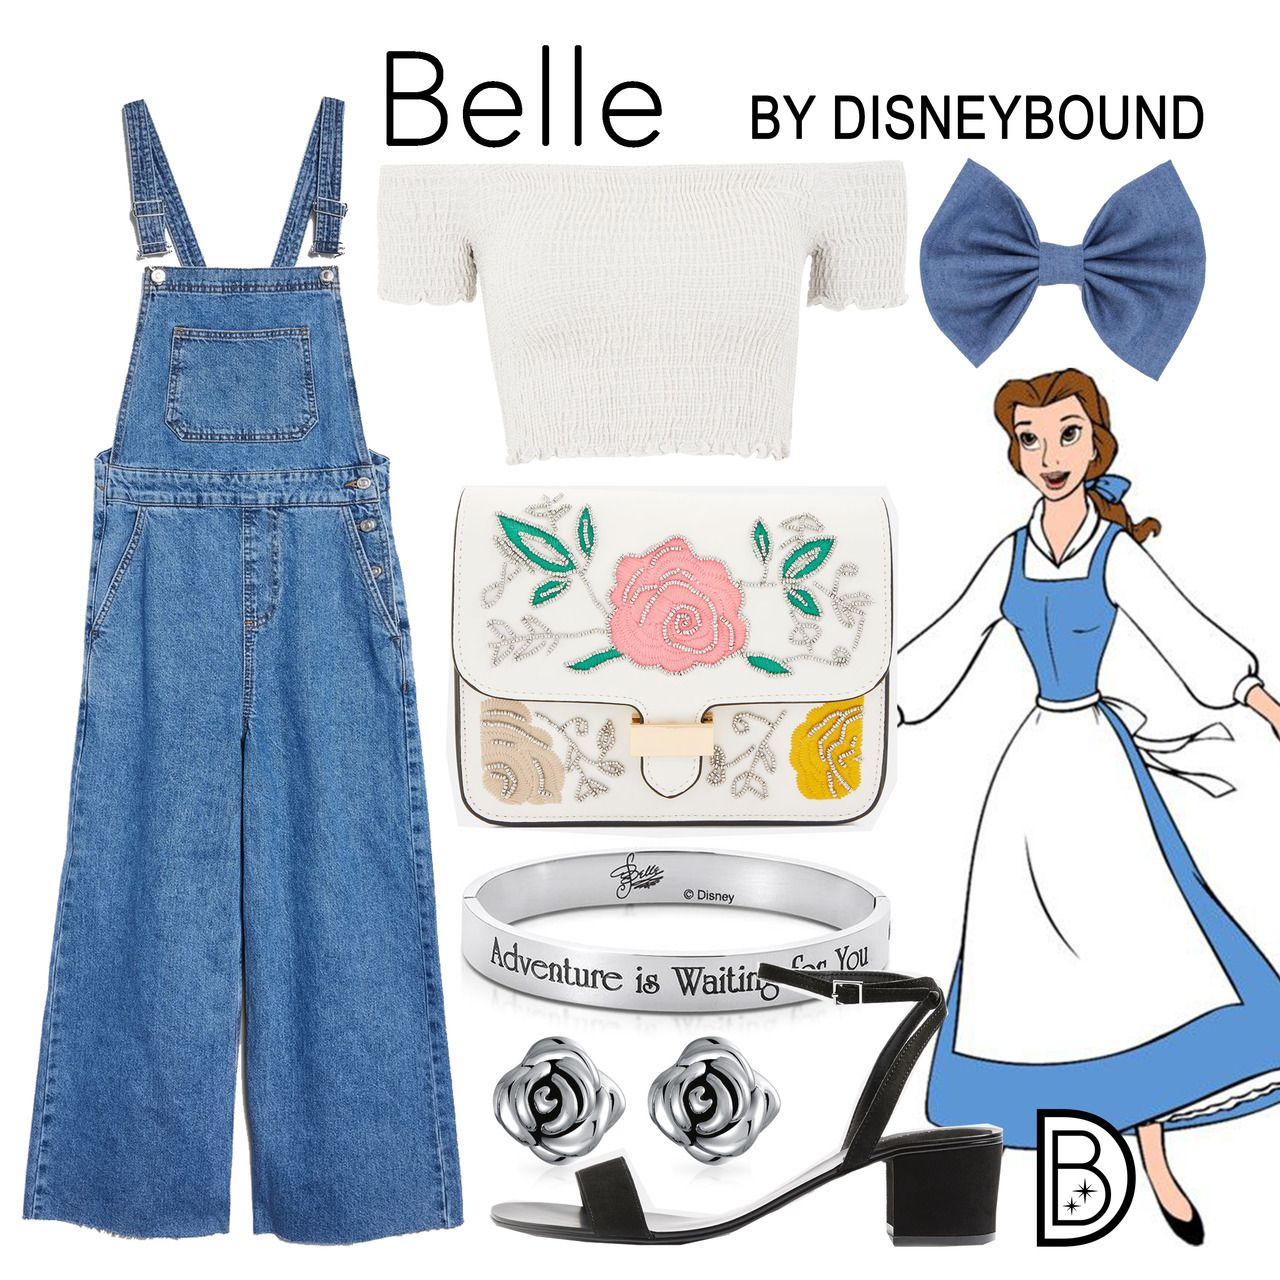 Disney Bound Belle Beauty And The Beast Disney